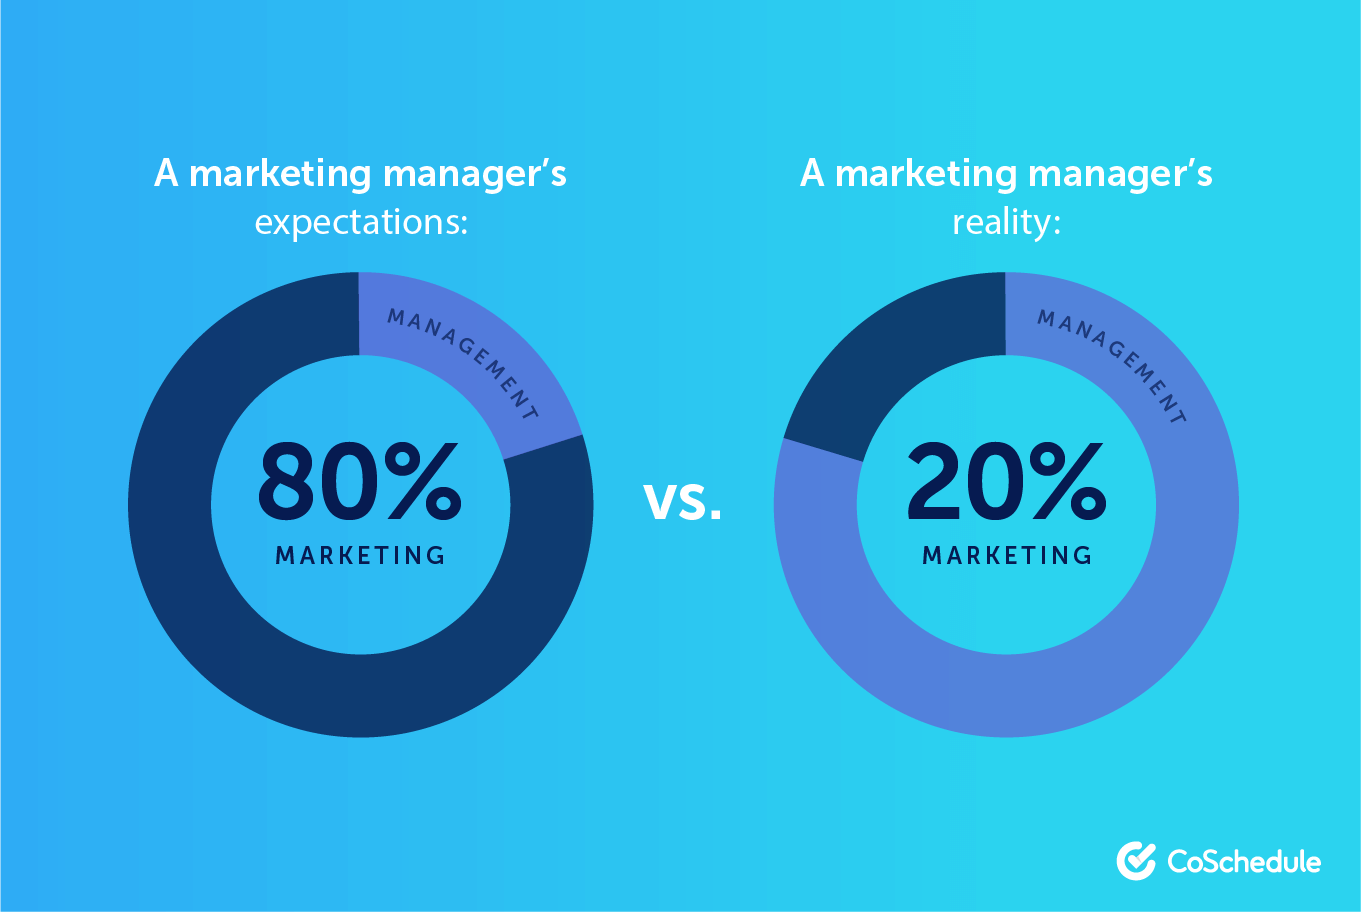 Expectations vs. reality of marketing managers.